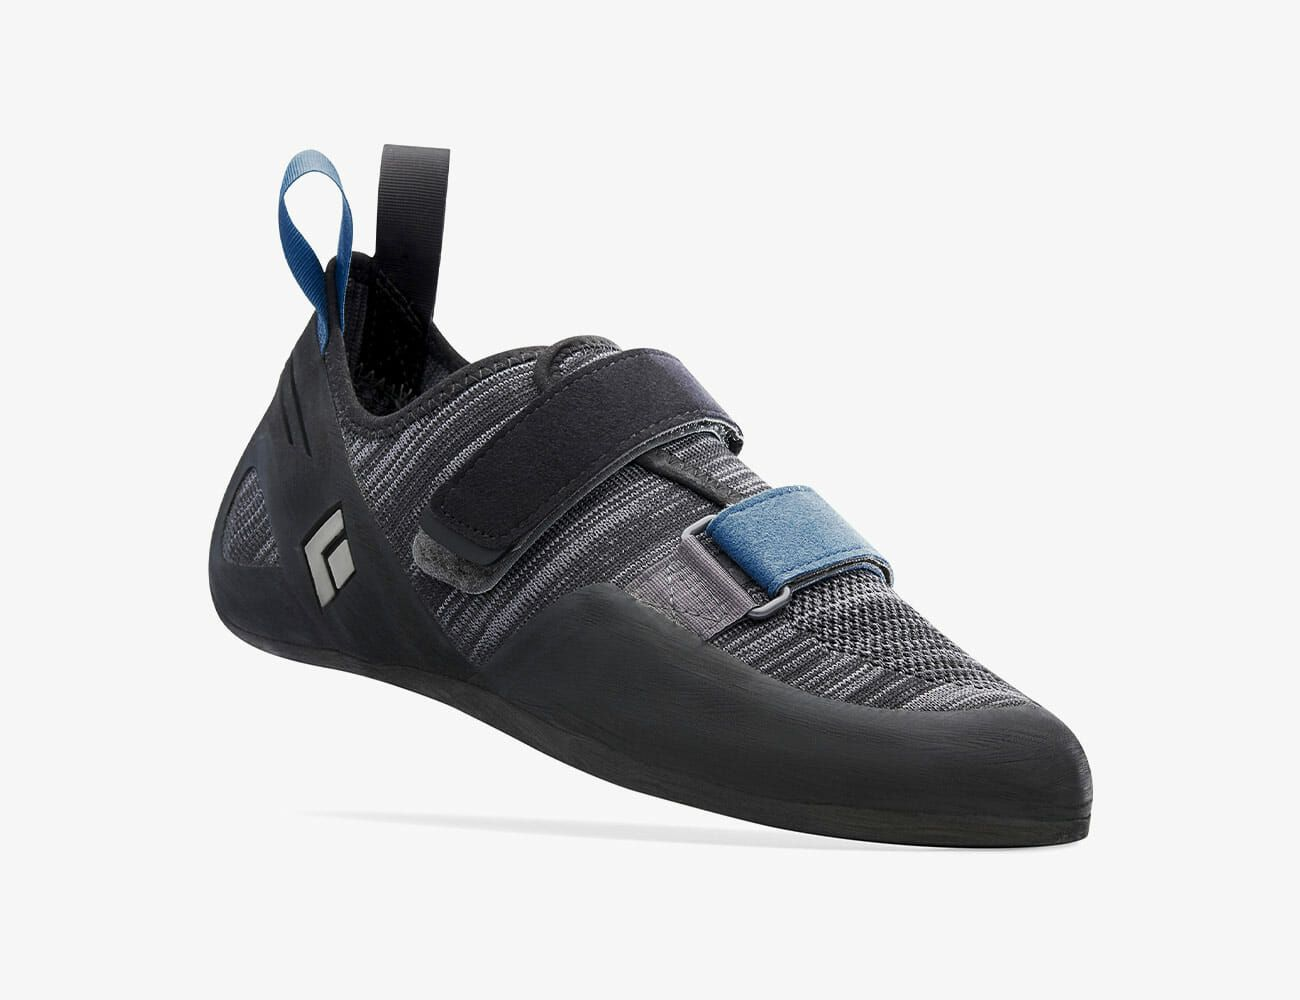 The Best Rock Climbing Shoes of 2019